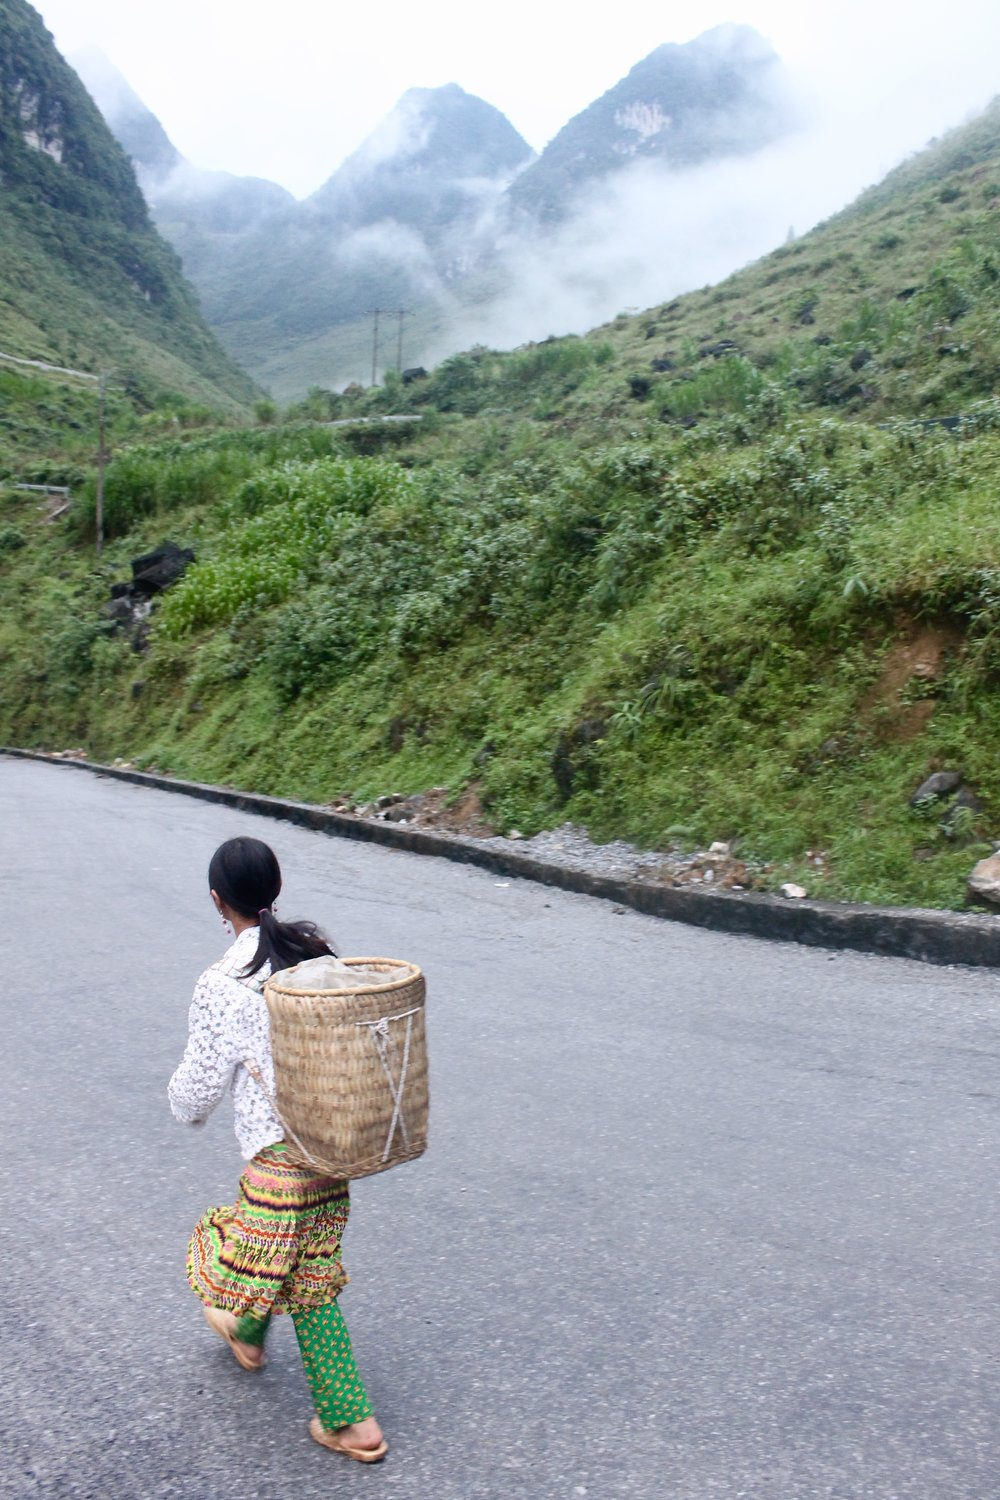 These straw backpacks are typical for transporting good between villages in Ha Giang.